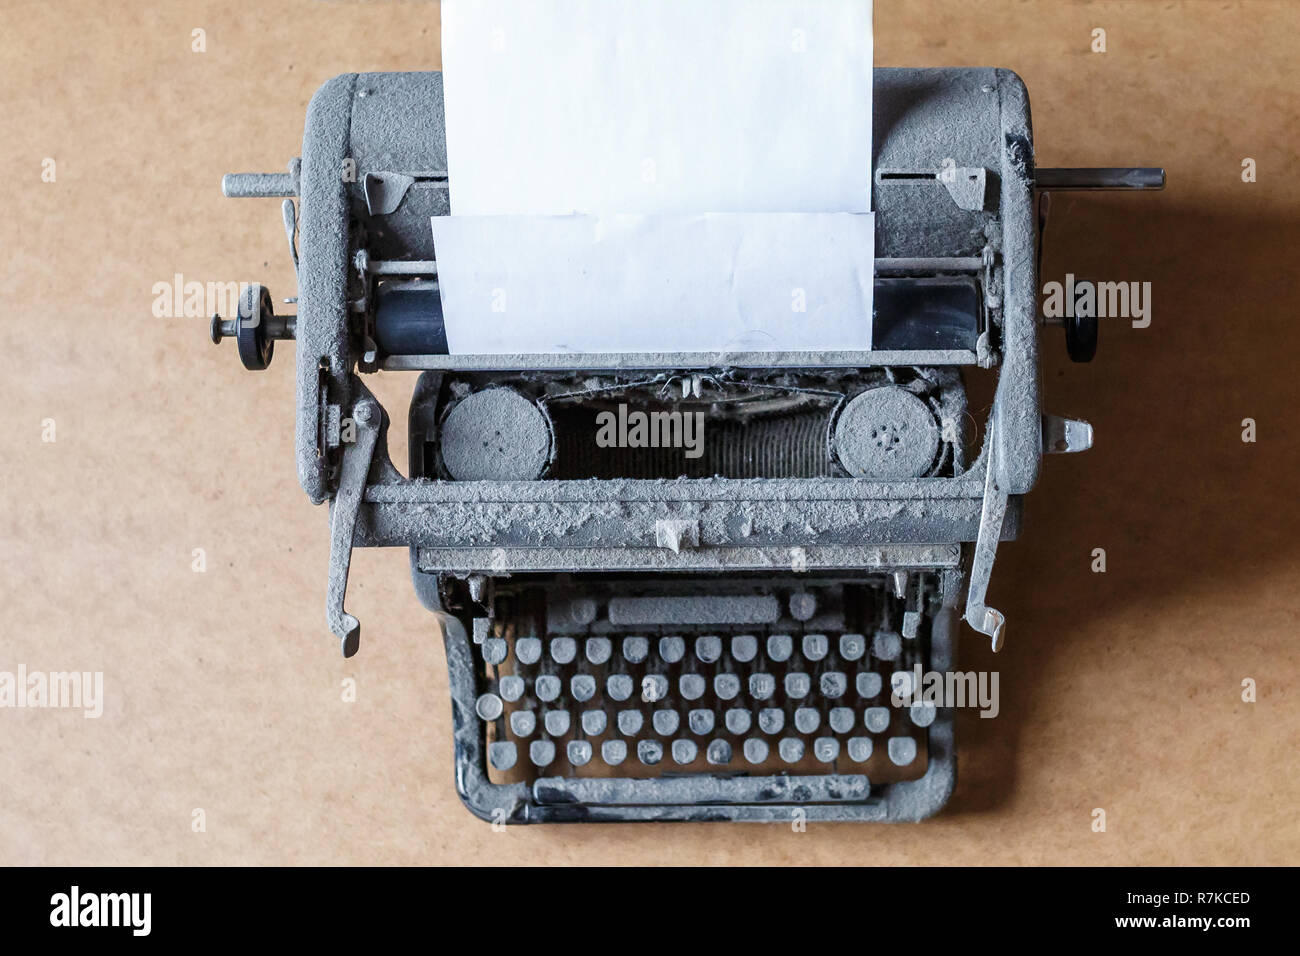 old vintage dust-covered typewriter with sheet of white paper - Stock Image